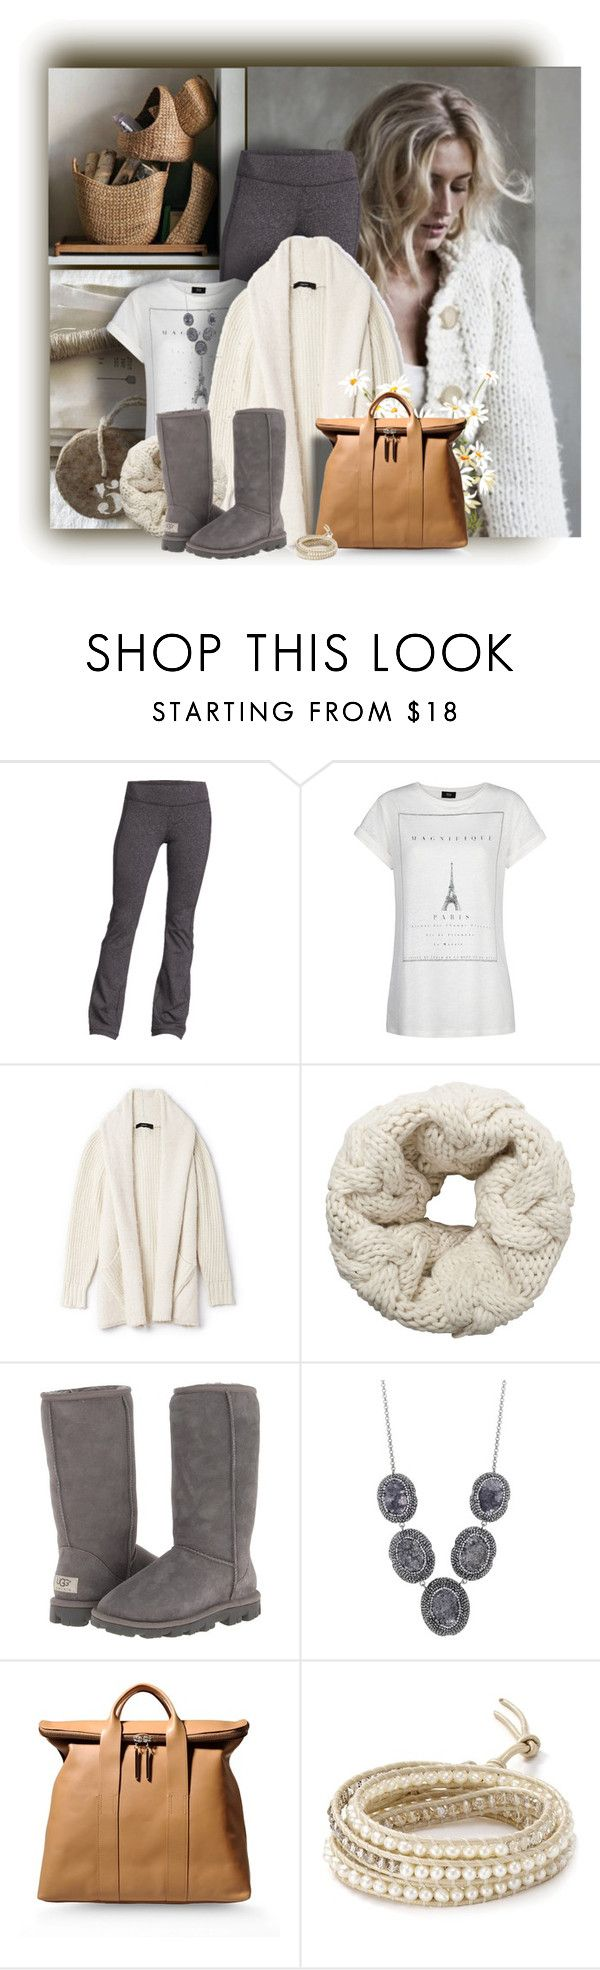 """""""Cozy and warm"""" by sherry7411 ❤ liked on Polyvore featuring Pottery Barn, Old Navy, MANGO, Forever 21, Vero Moda, UGG Australia, Soru Jewellery, 3.1 Phillip Lim, Chan Luu and cozy"""